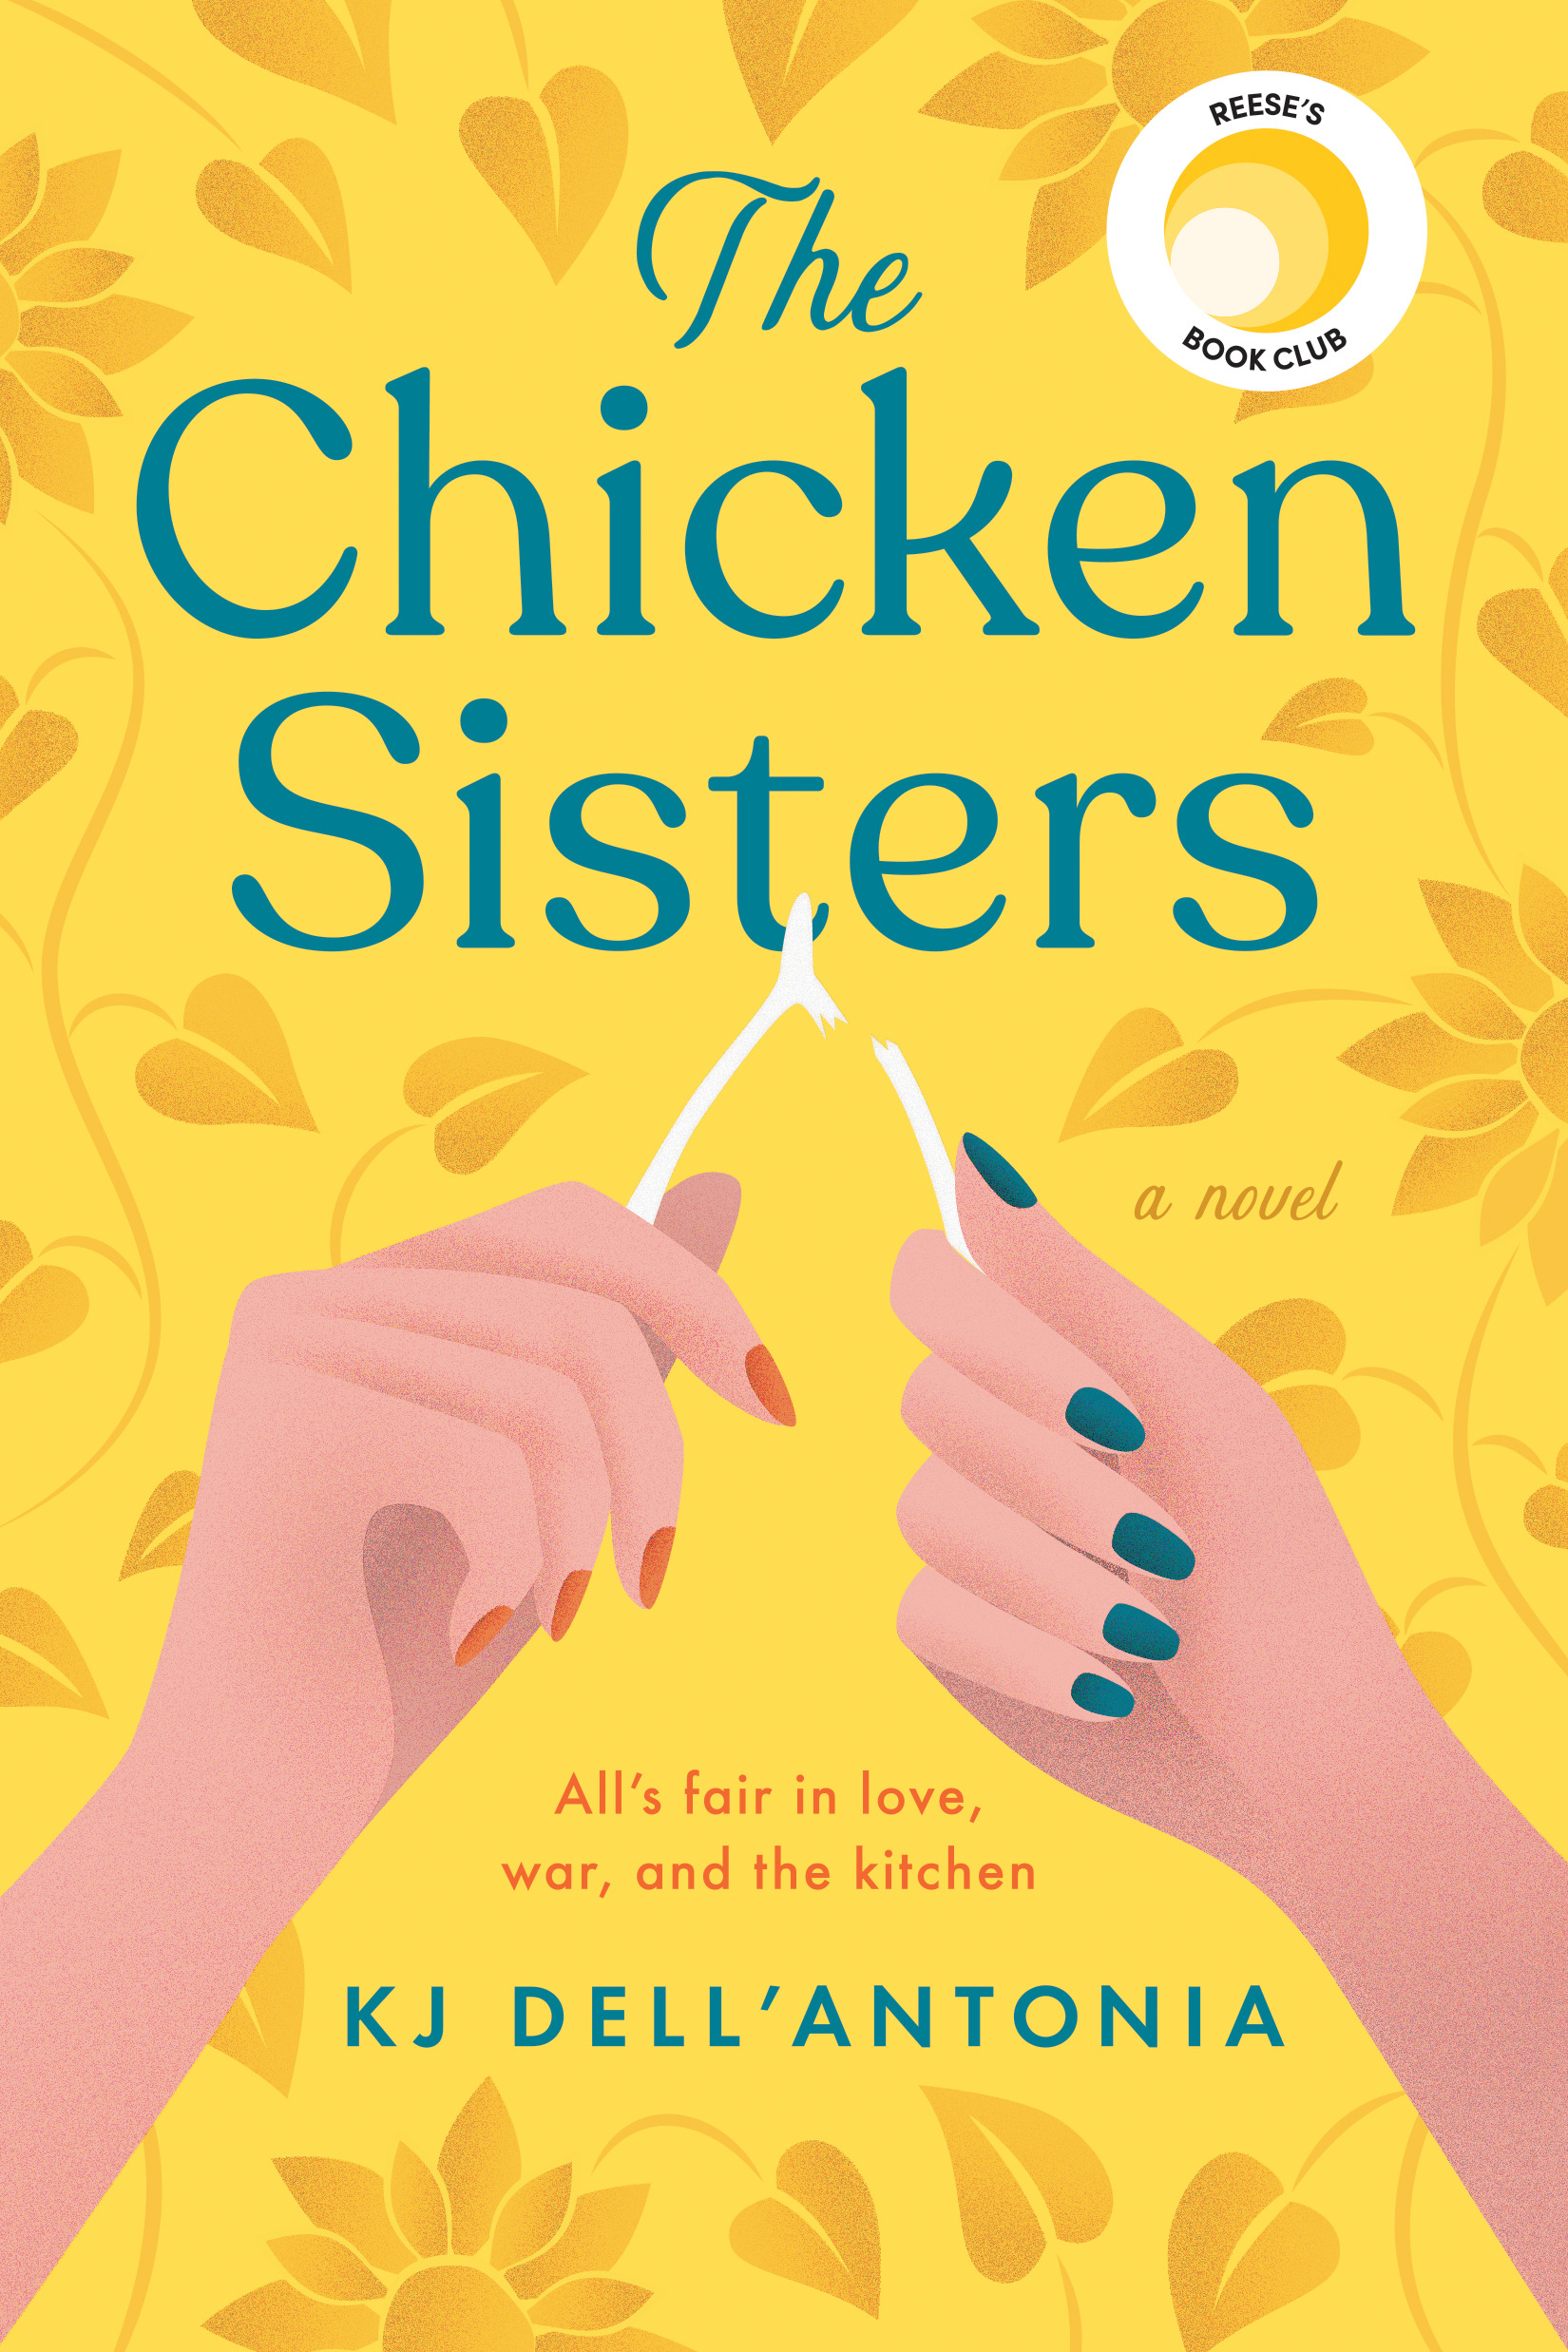 CHicken sisters cover with seal